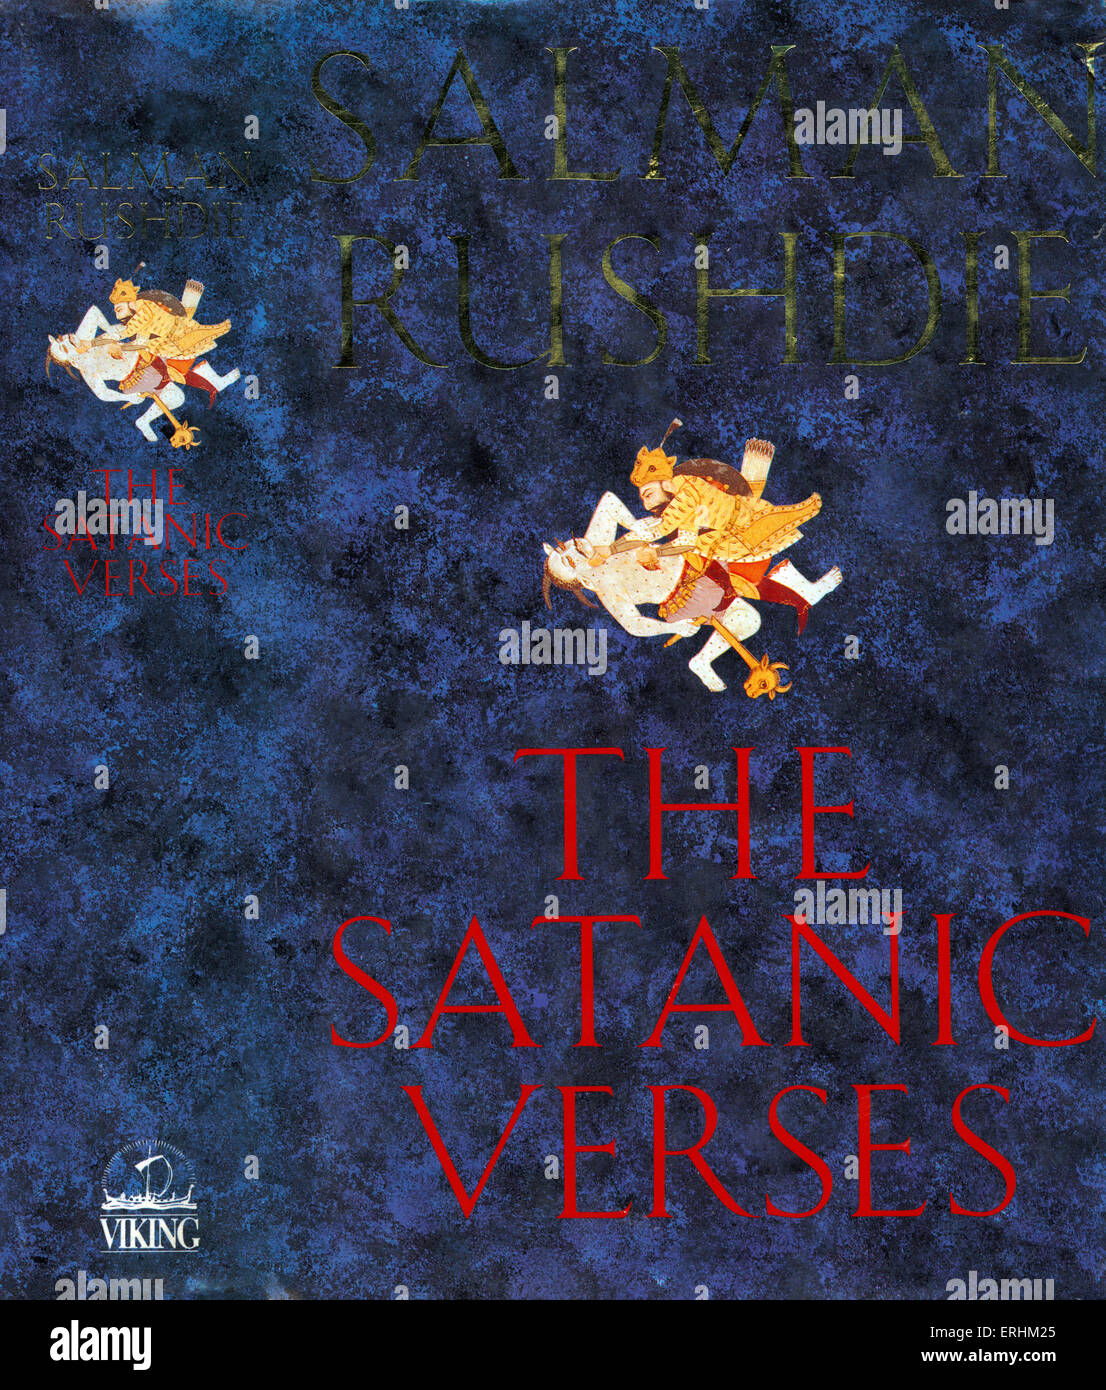 Salman Rushdie 's book 'The Satanic Verses' cover. Published London, Viking. - Stock Image